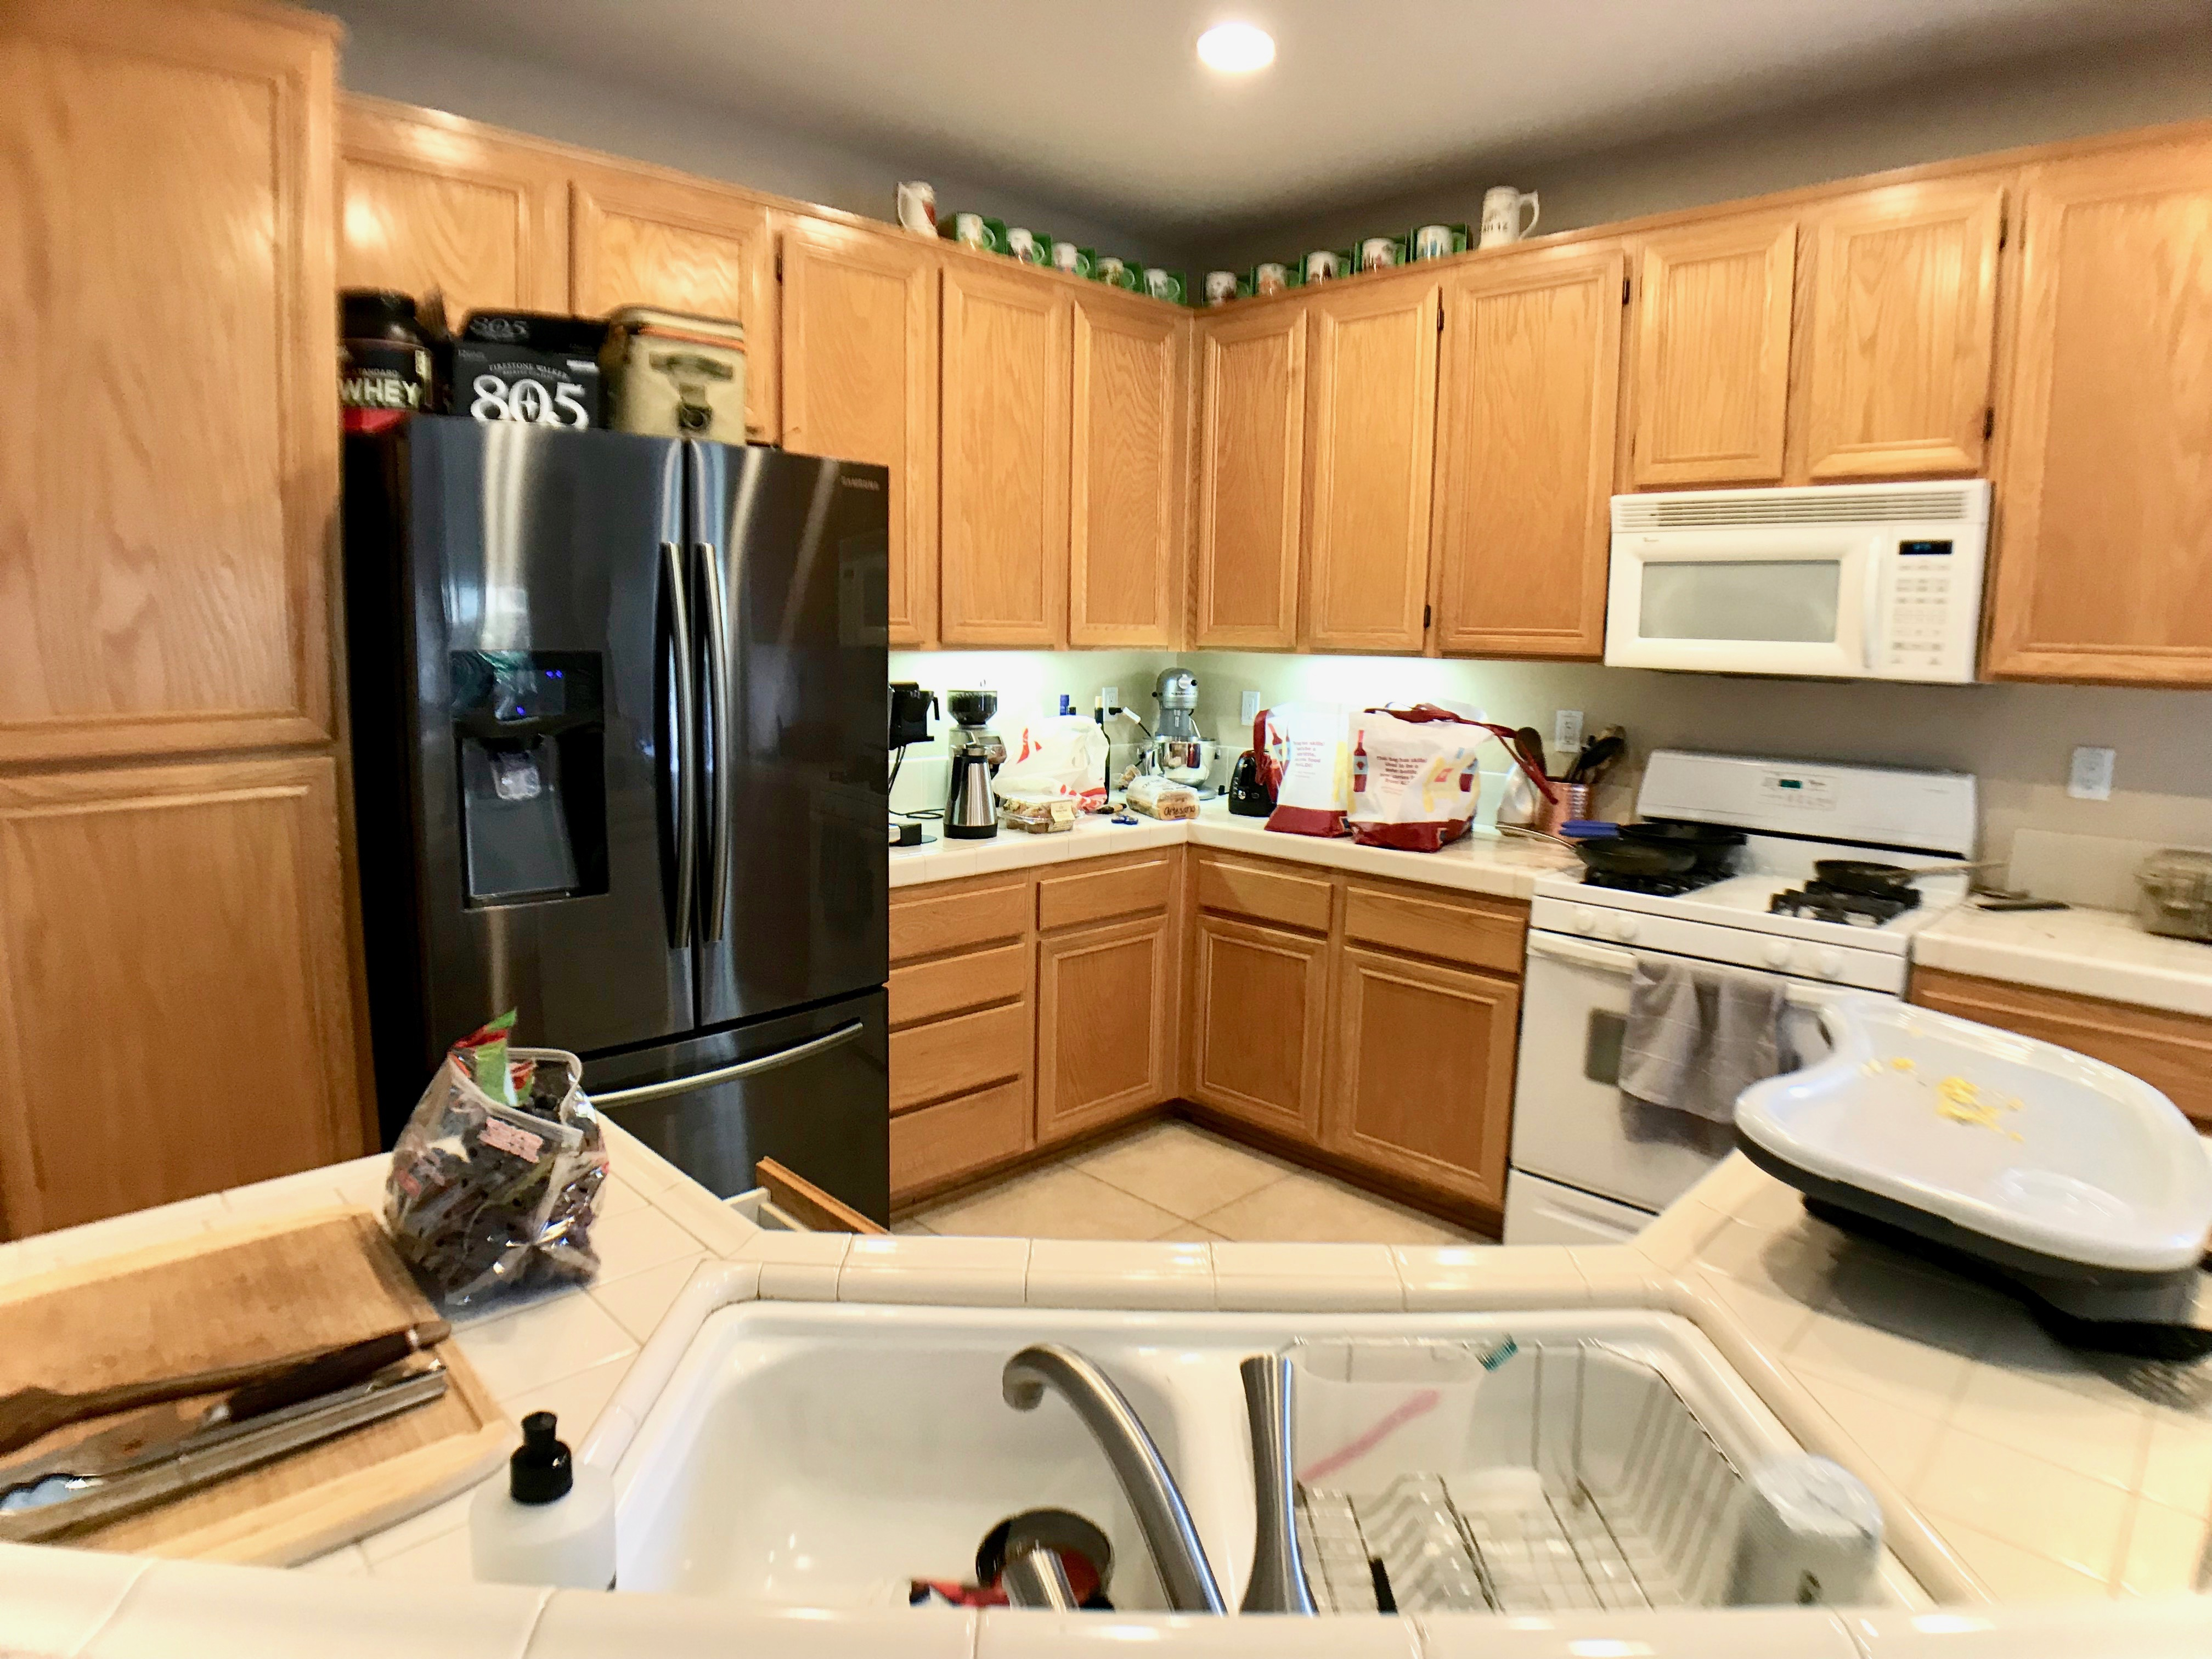 Don't leave clutter out when taking home listing photos.